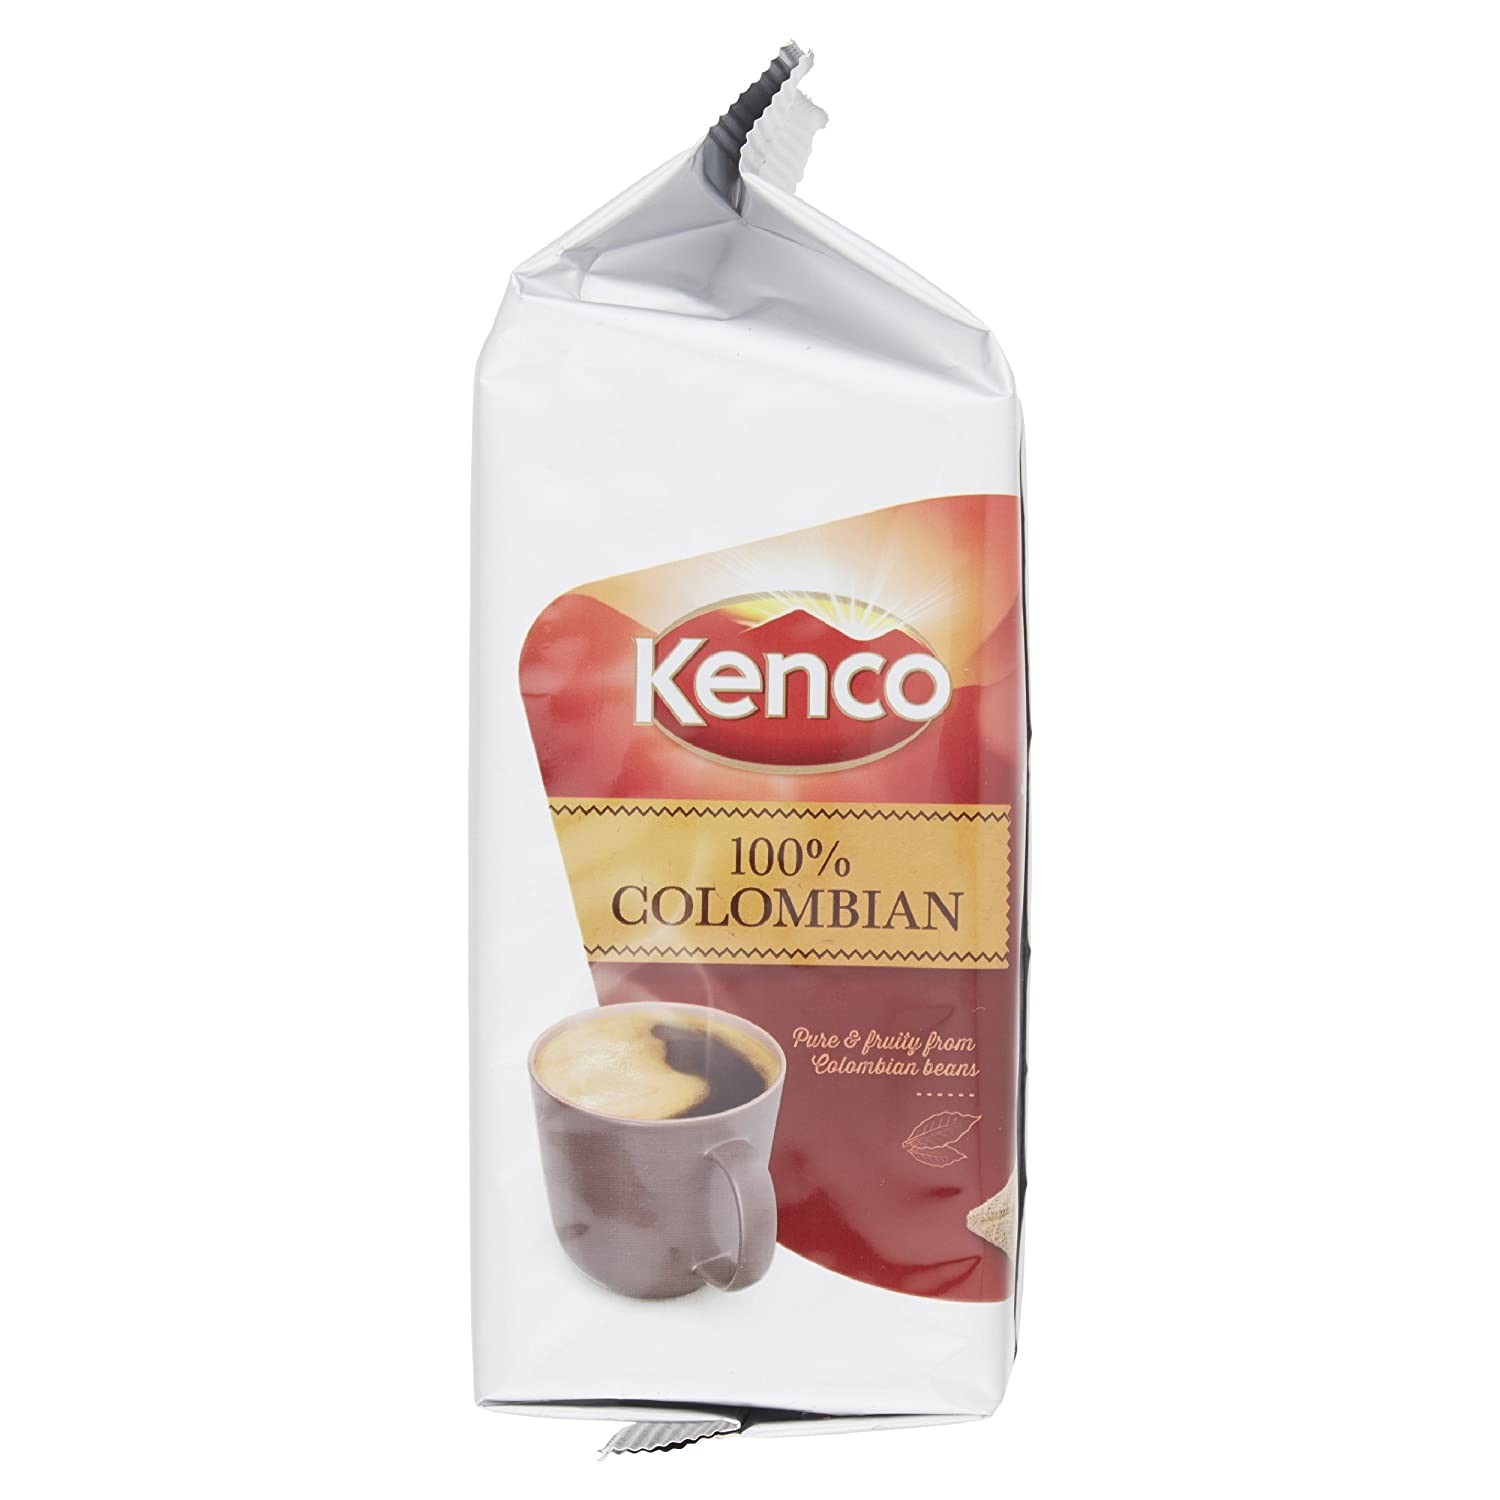 TASSIMO Kenco Colombian 16 T DISCs (Pack of 5, Total 80 T DISCs): Amazon.es: Alimentación y bebidas